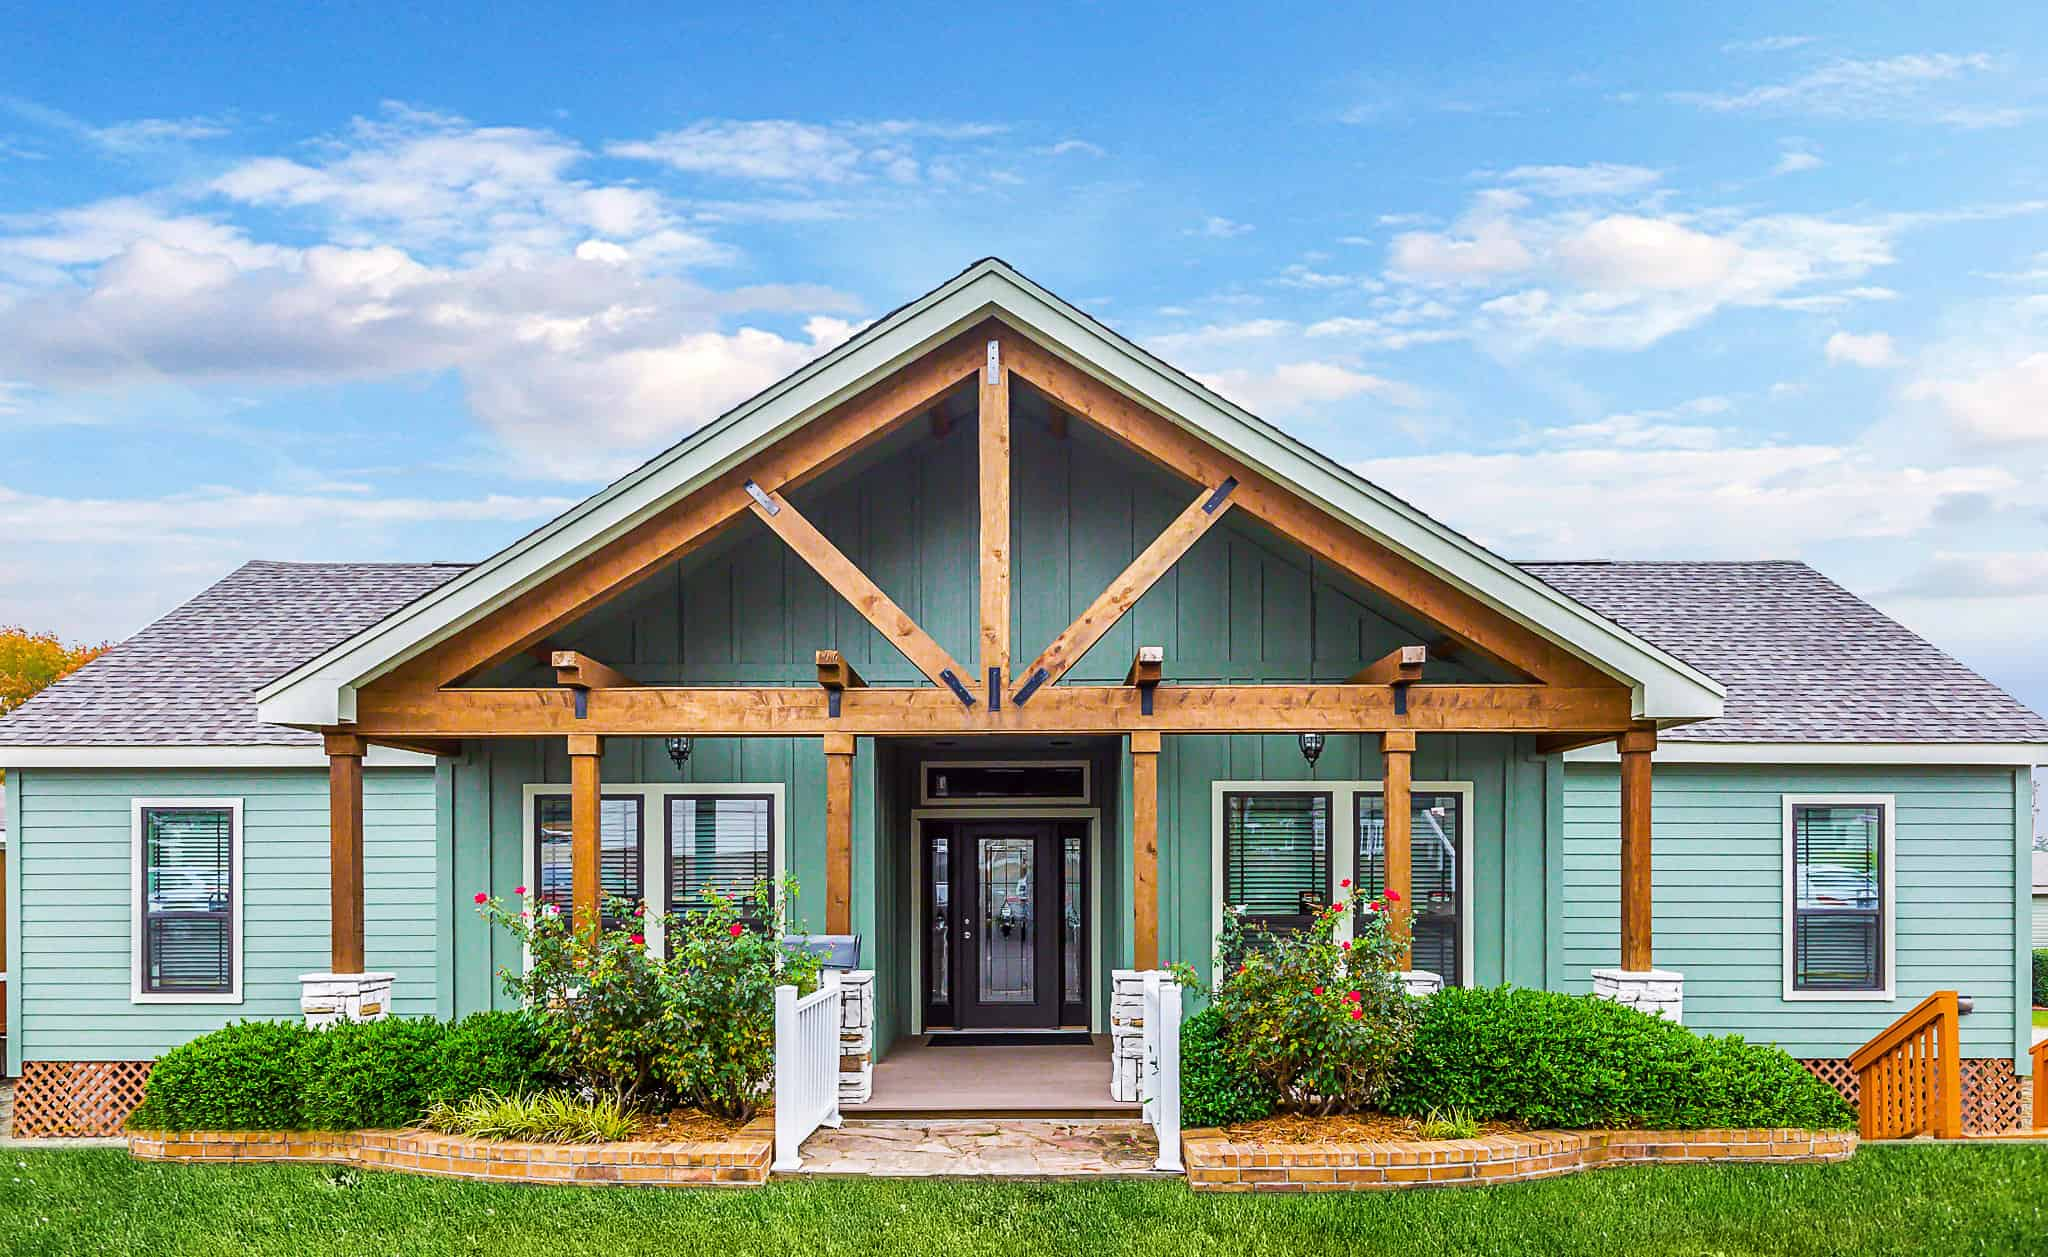 K-House-Teal Mobile Homes For Sale By Owner Tyler on used mobile home sale owner, mobile home parks sale owner, apartments for rent by owner, mobile homes for rent, heavy equipment by owner,